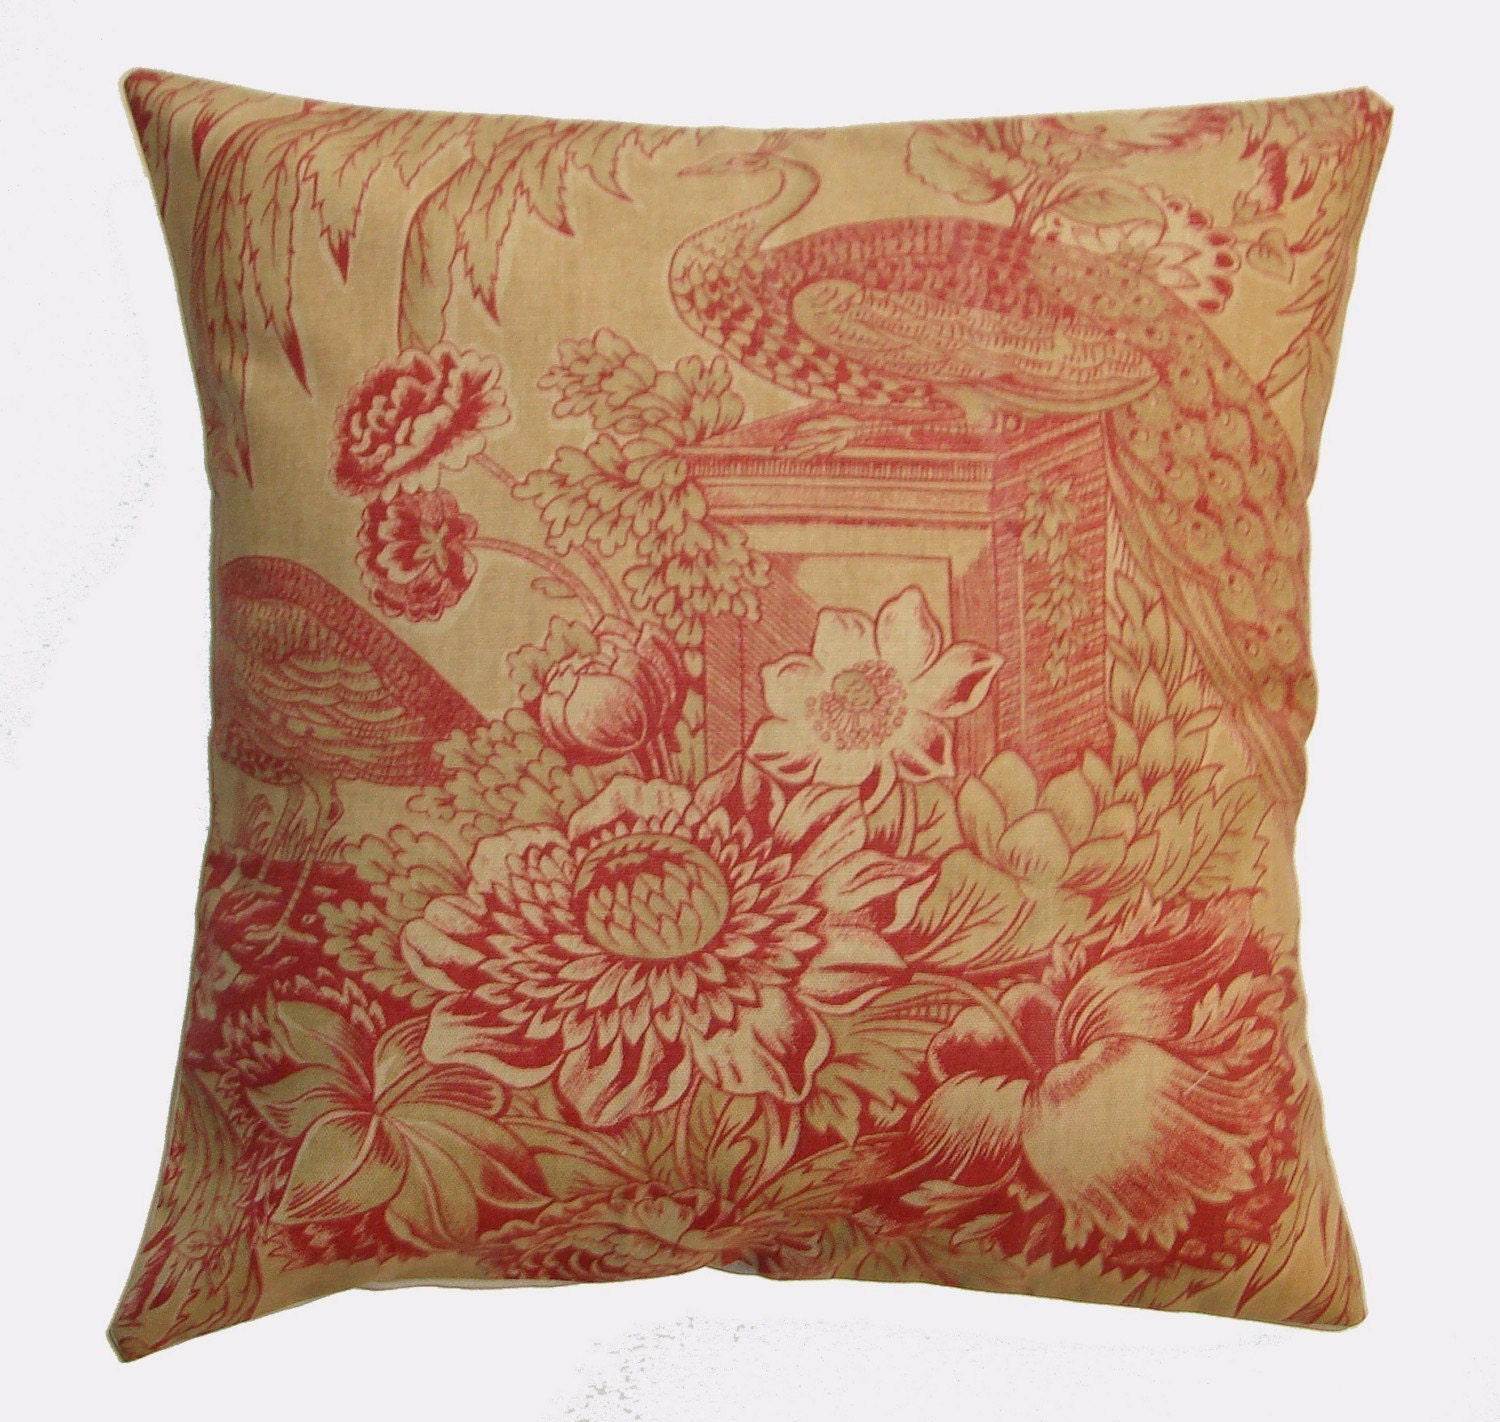 Throw Pillow 16X16 Removable cover sewn with a Lovely Ornate